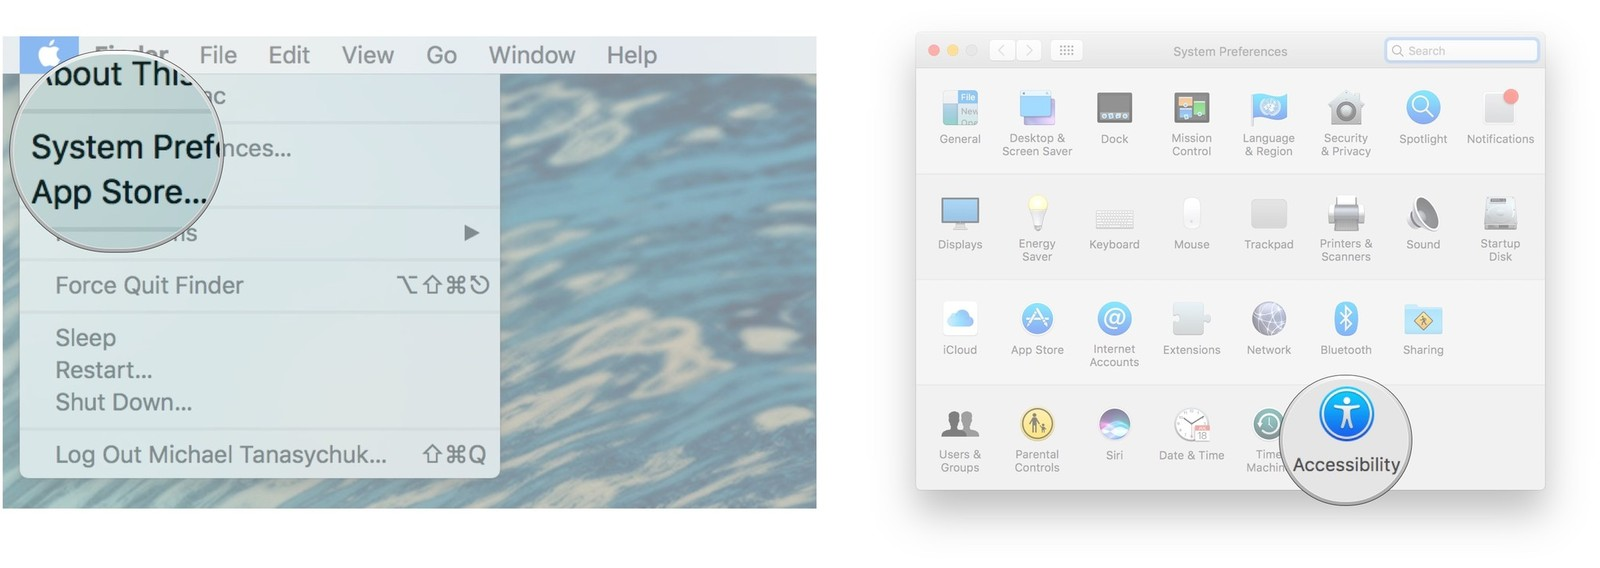 Click System Preferences, click Accessibility